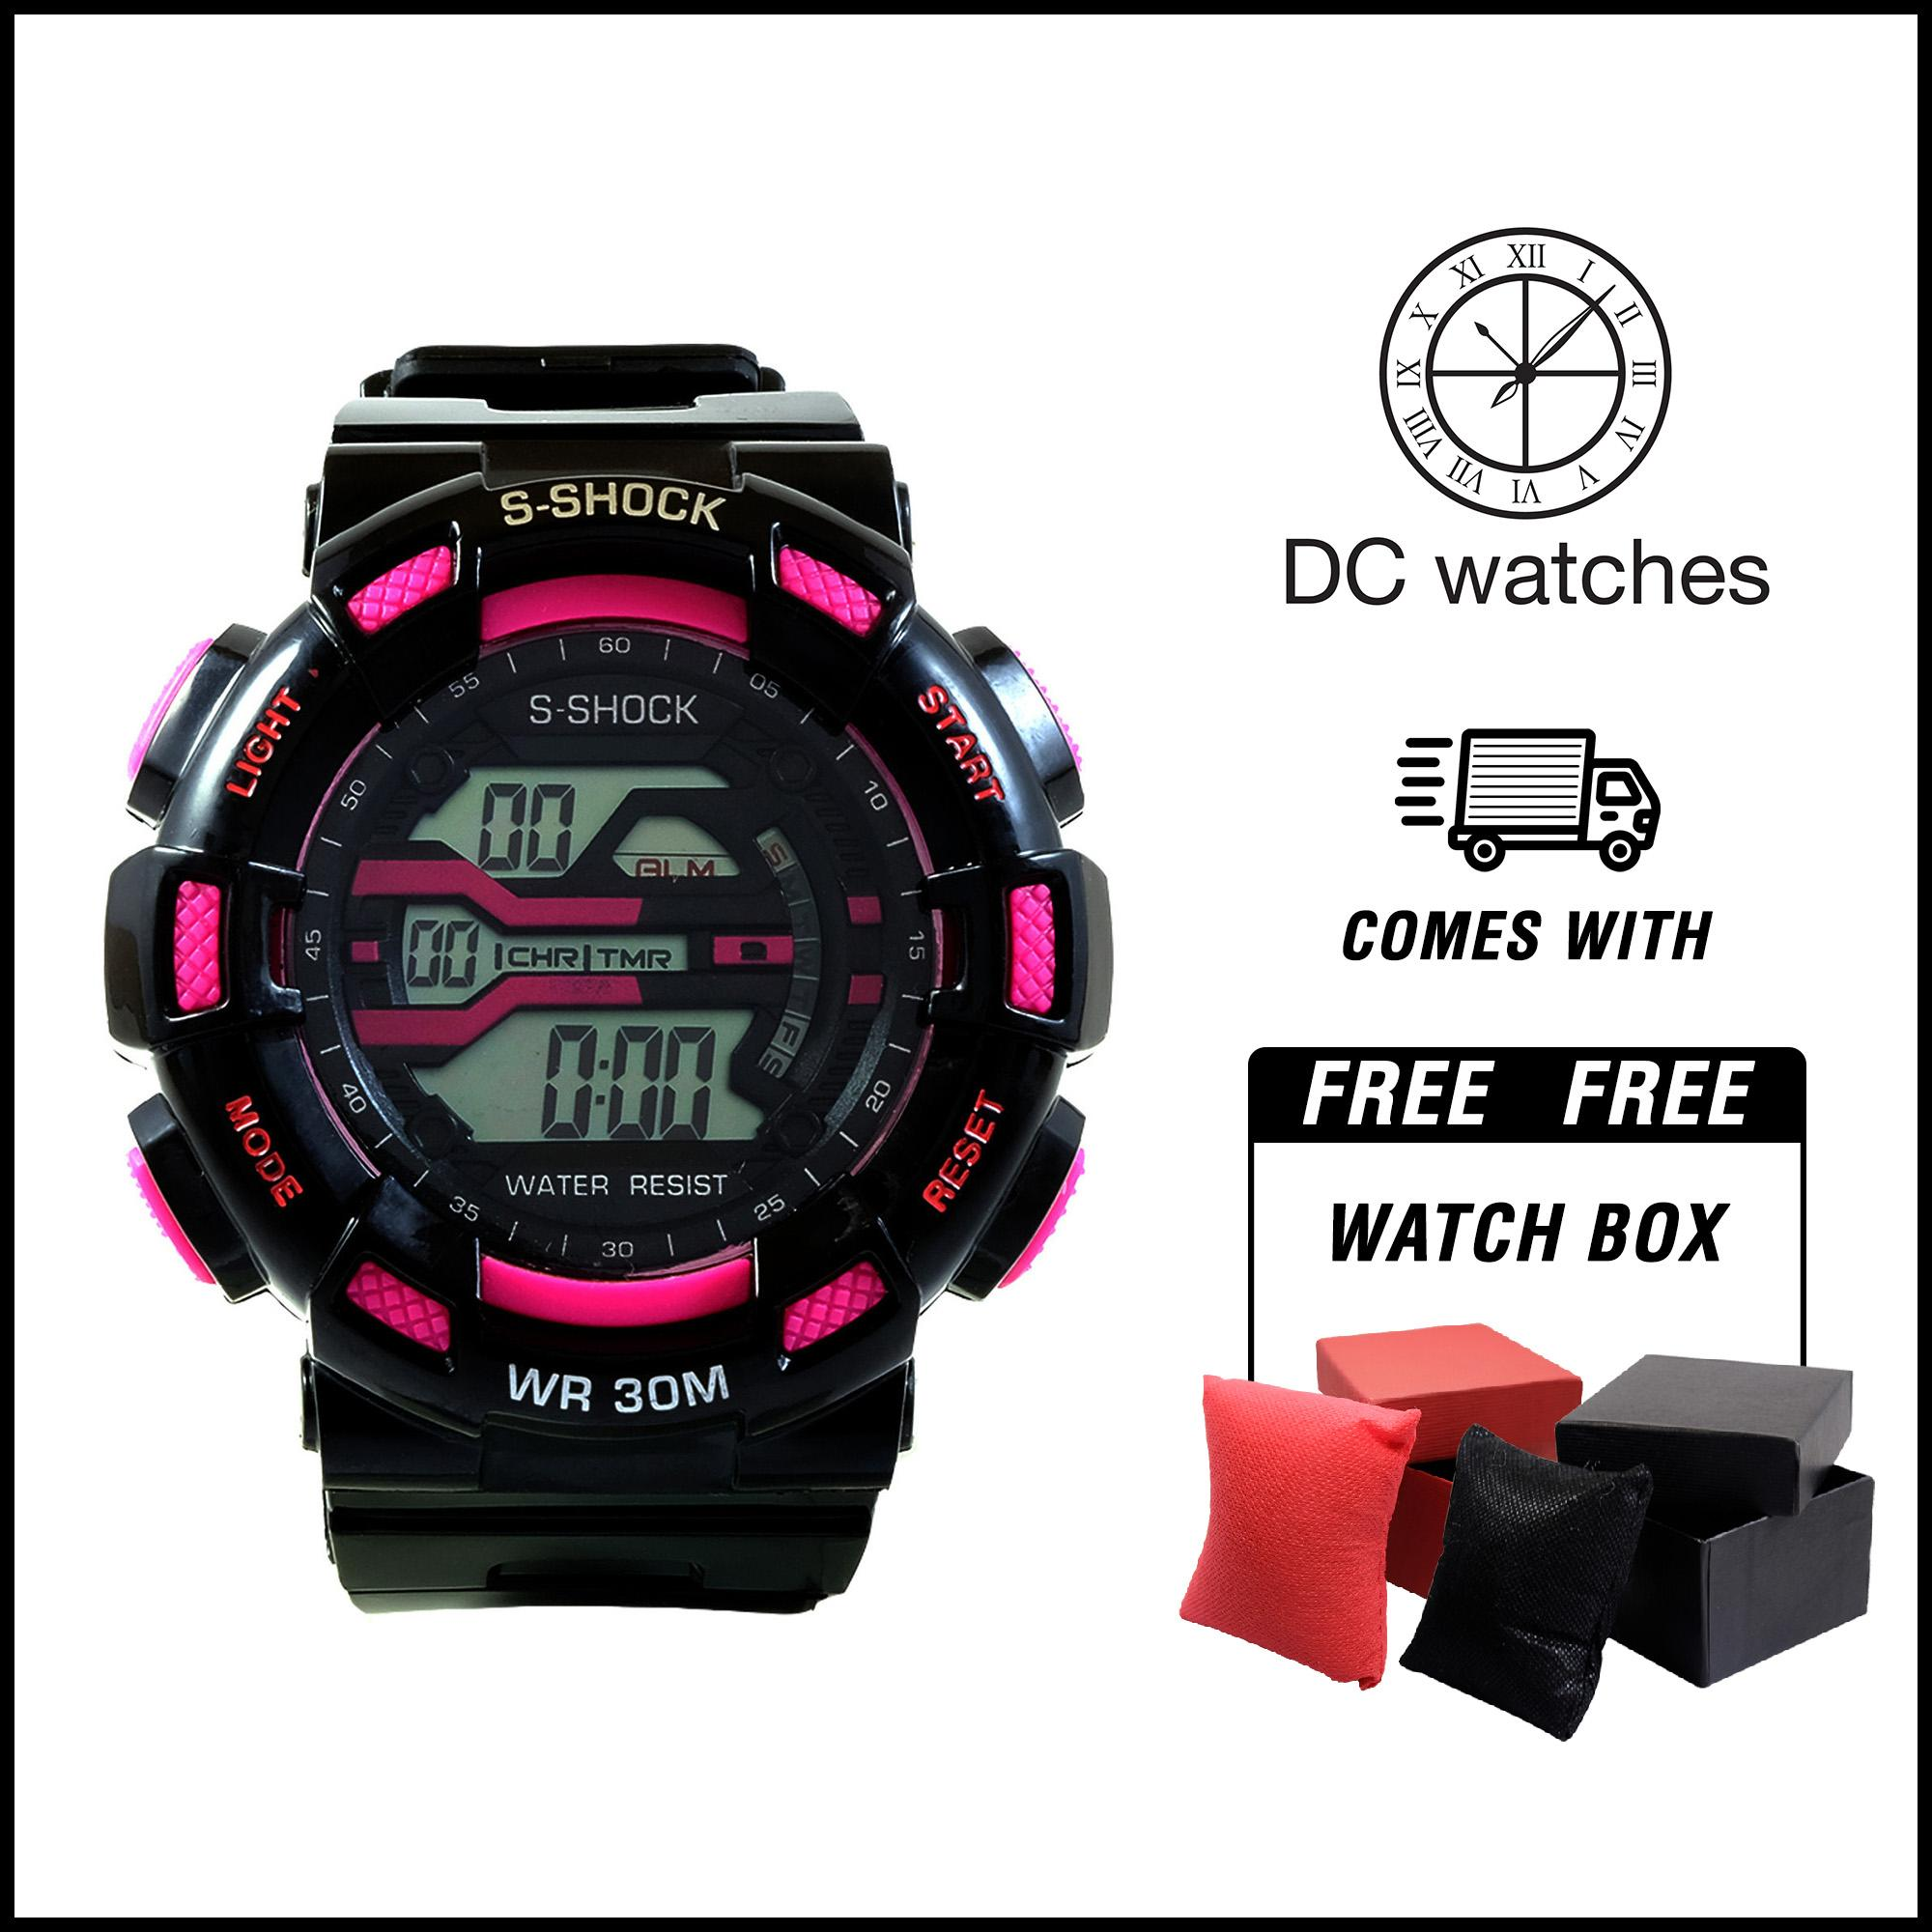 DC Watches S-shock 9976 3bar DC Watches for men Sports Watches 30M  Waterproof Back 77dfb9df70